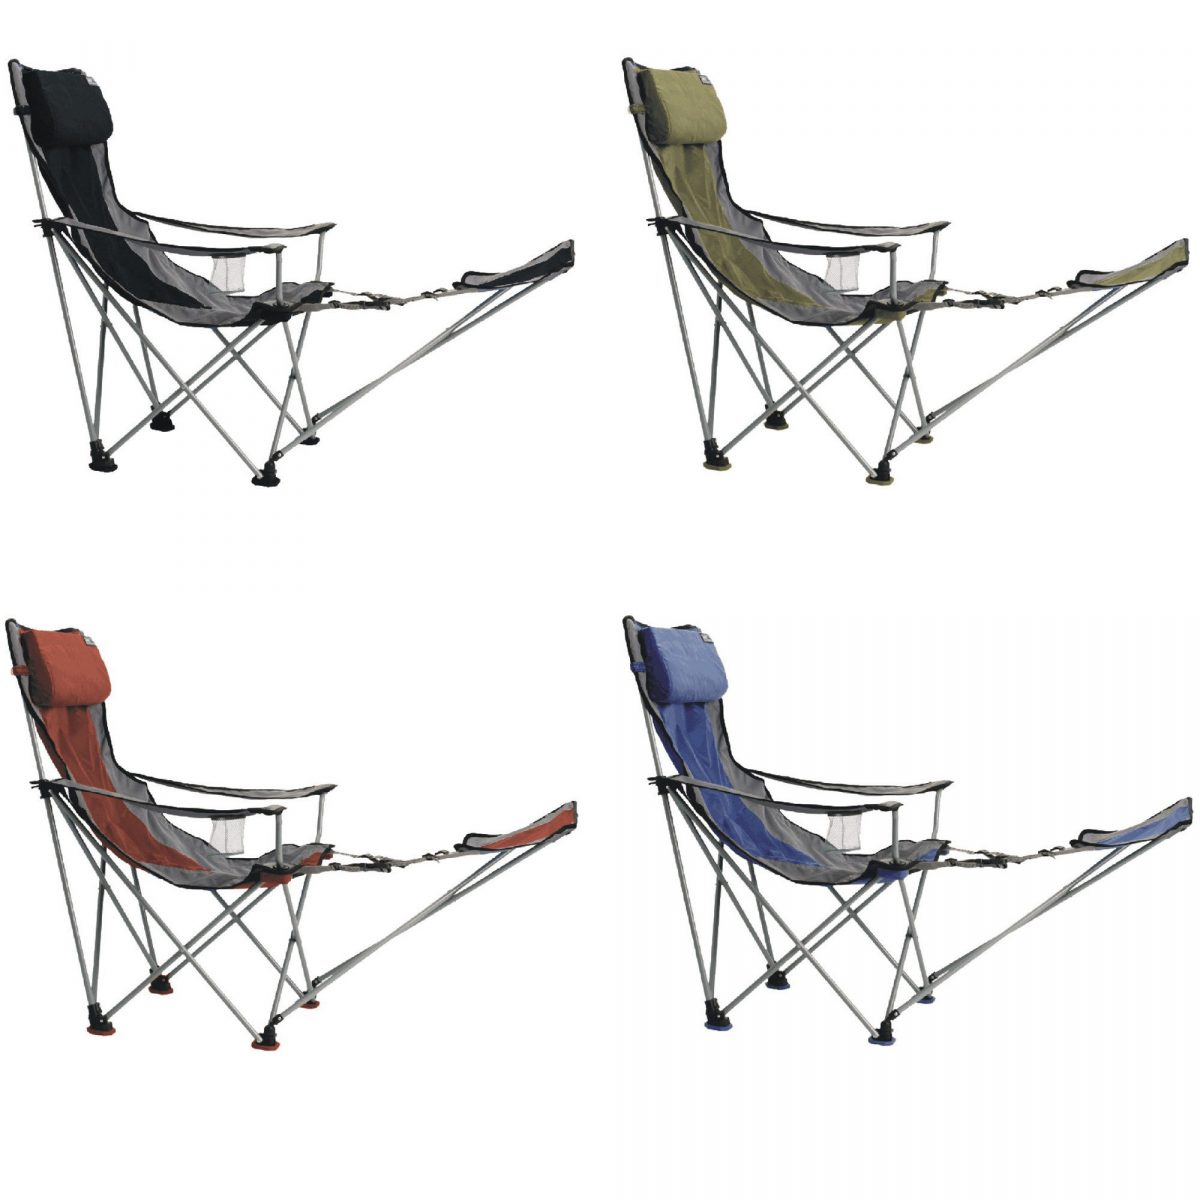 TRAVELCHAIR Big Bubba Chair, Camping Chair